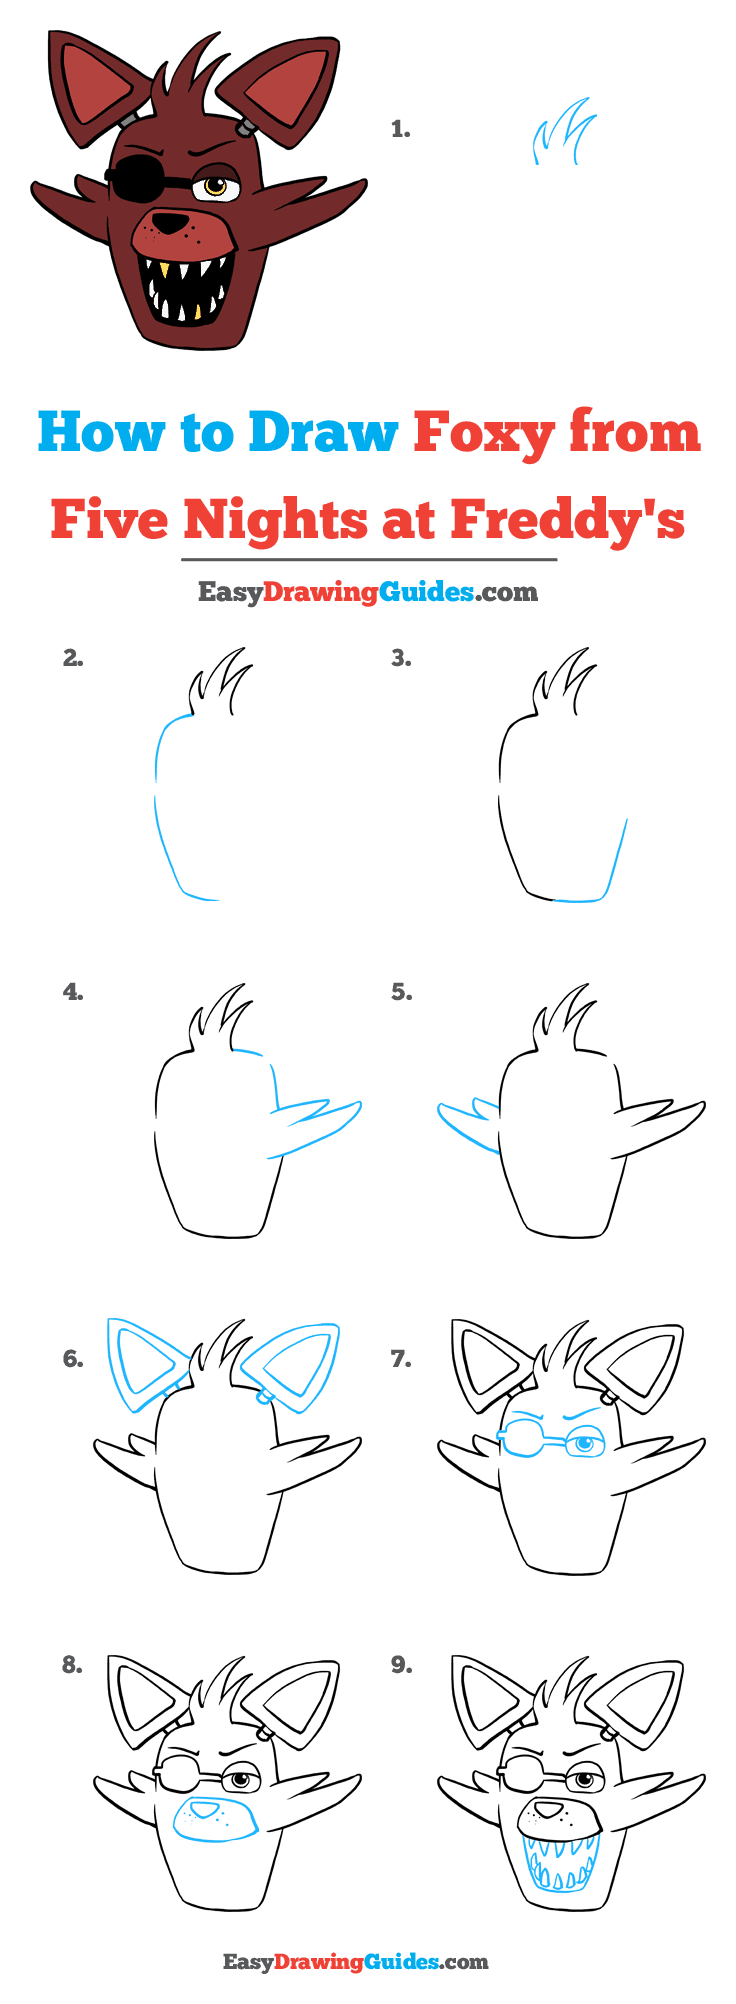 How to Draw Foxy from Five Days at Freddy's